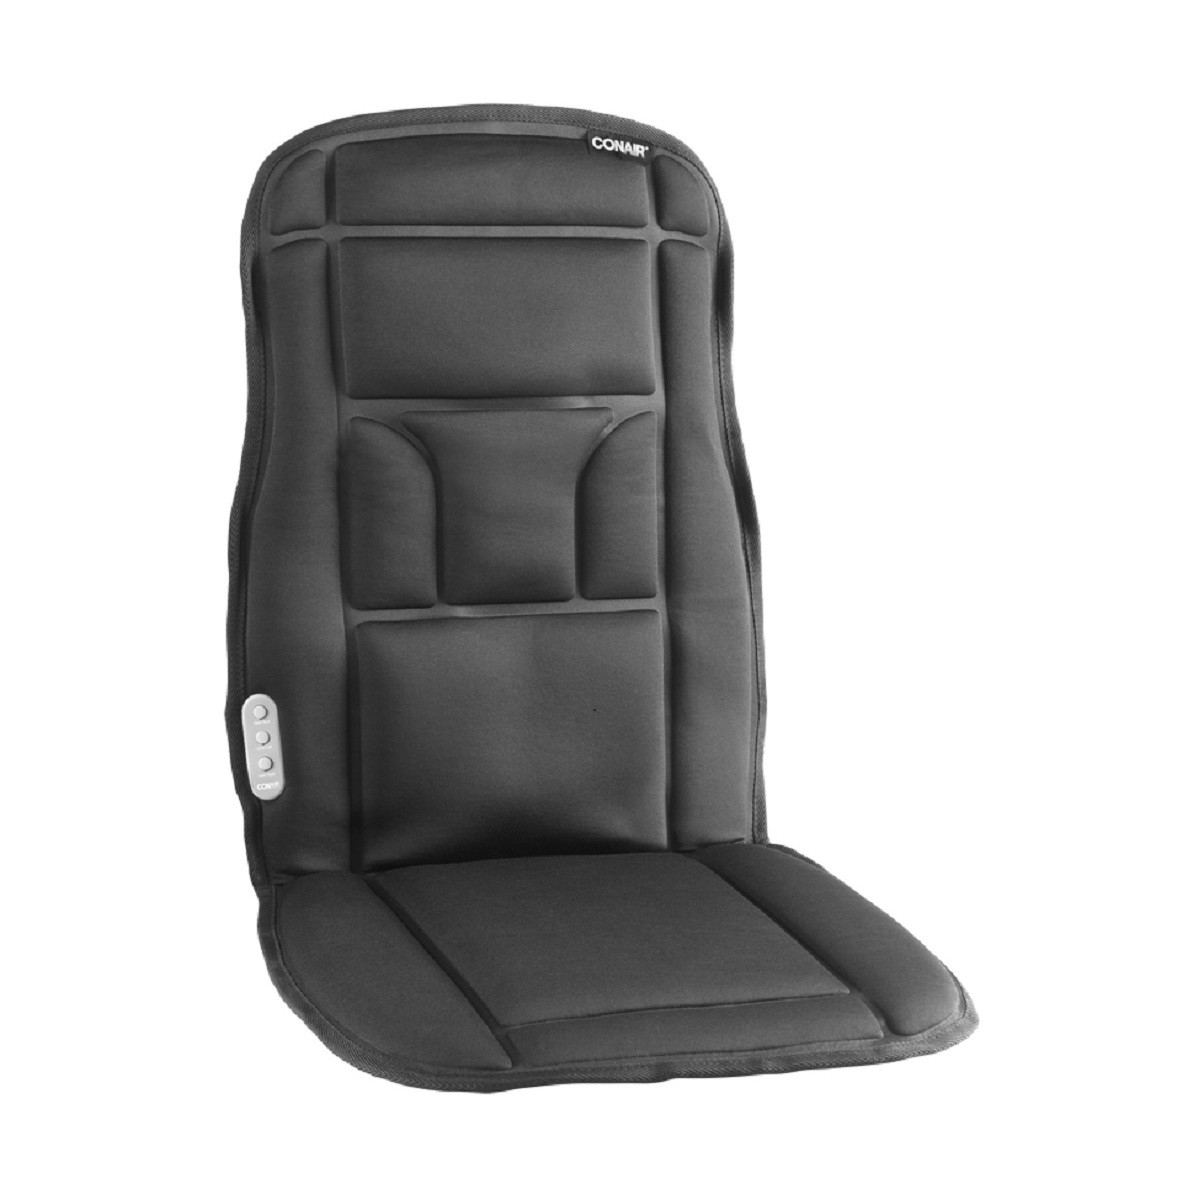 Car Seat Cushions Australia Body Benefits Massaging Back And Seat Cushion